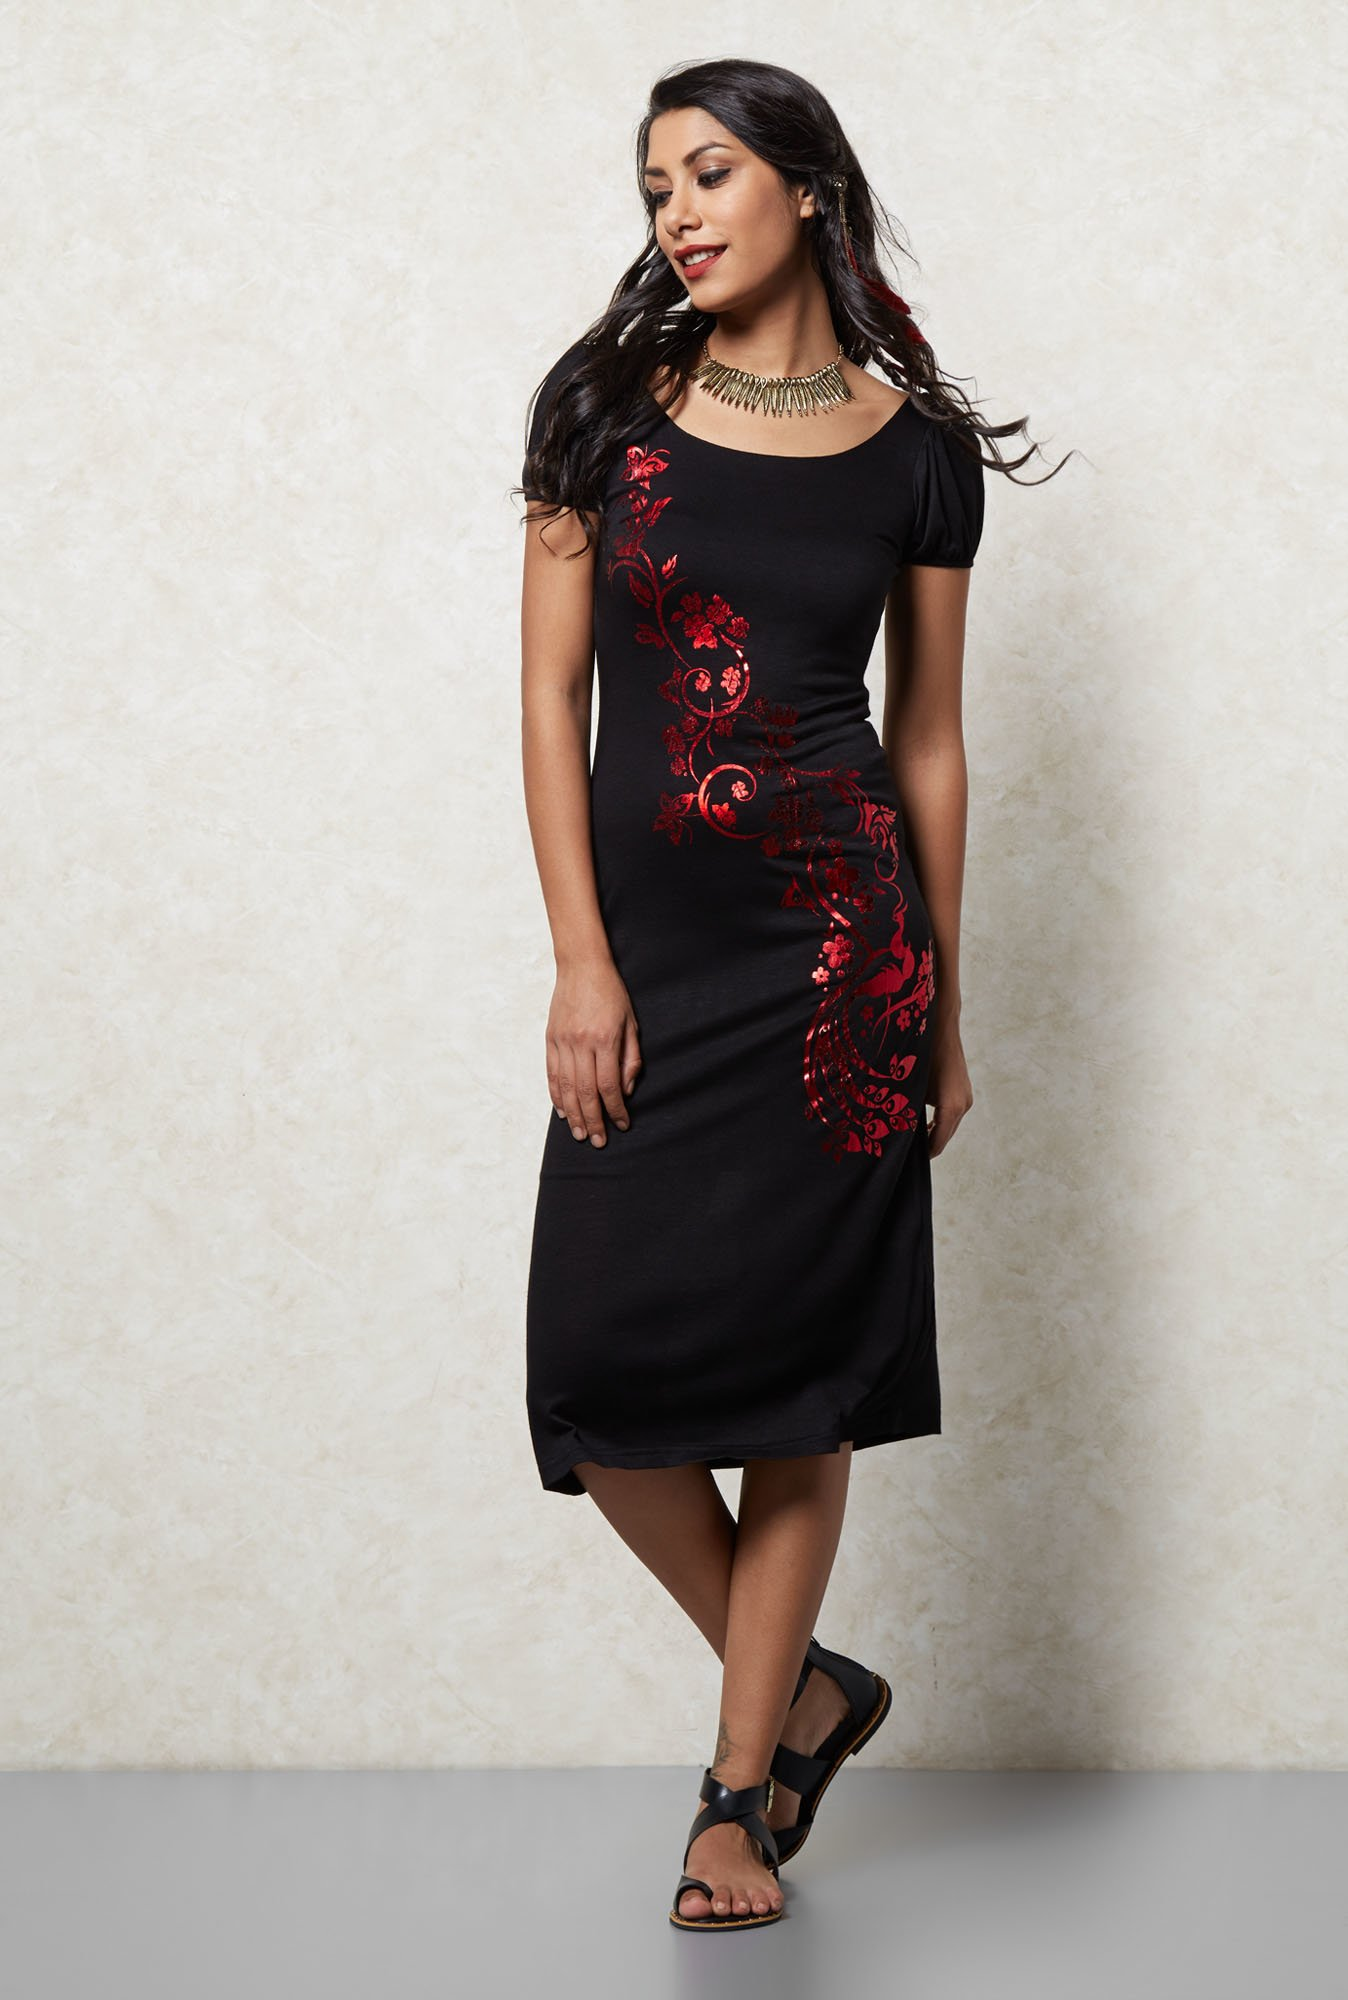 Ira Soleil Black Printed Dress